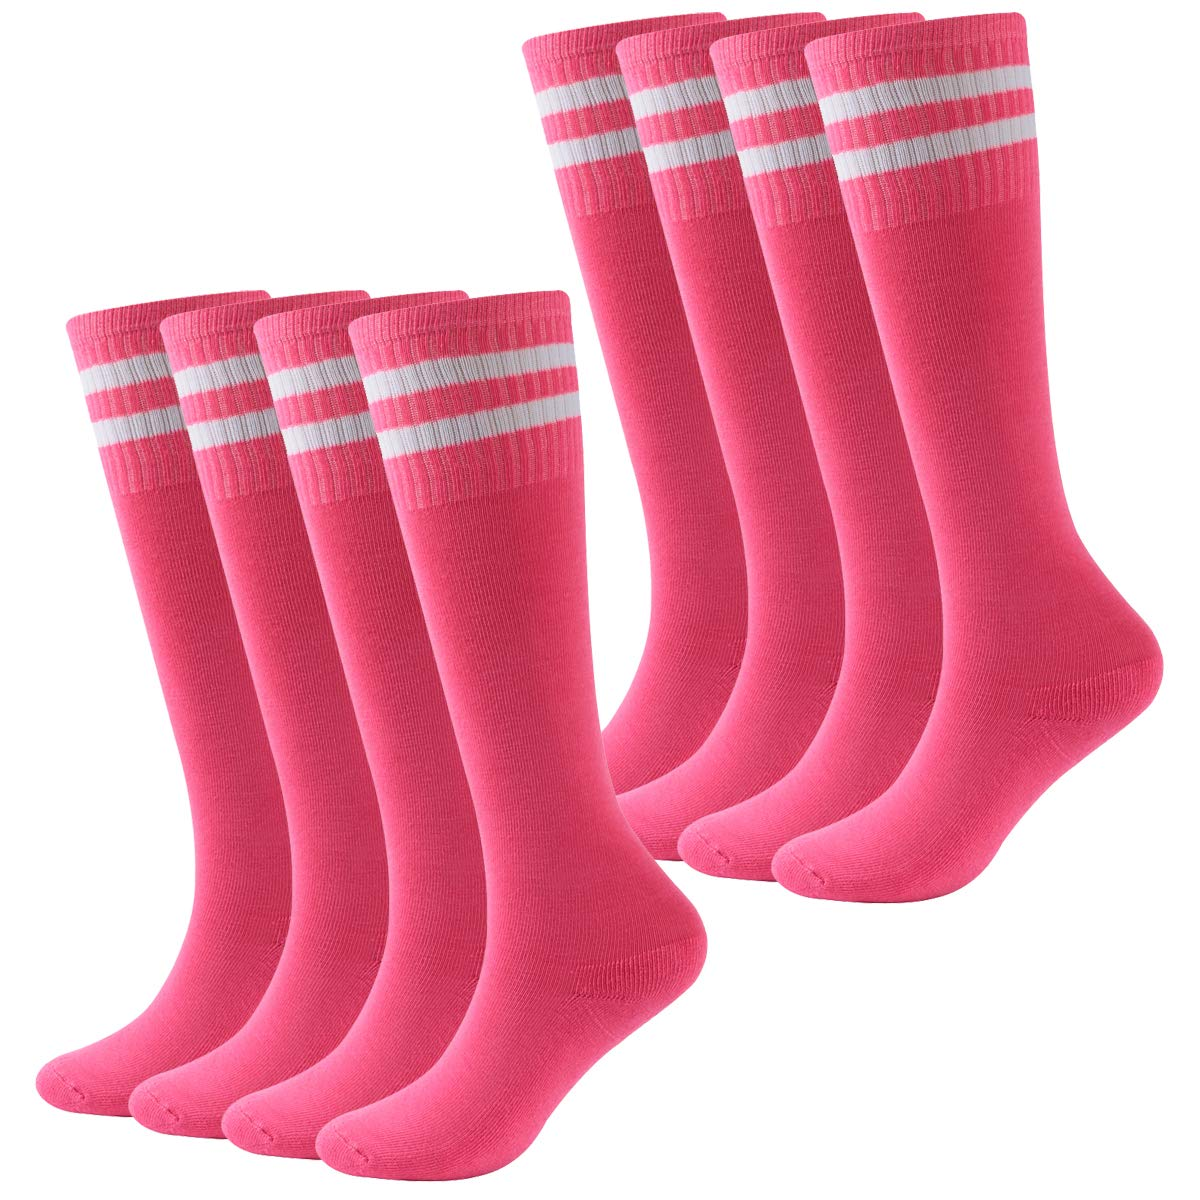 Boys Baseball Socks,Youth Kids Striped Cotton CushionTube Running Athletic Pink Soccer Socks Fasoar 8 Pairs Rose Red by Fasoar